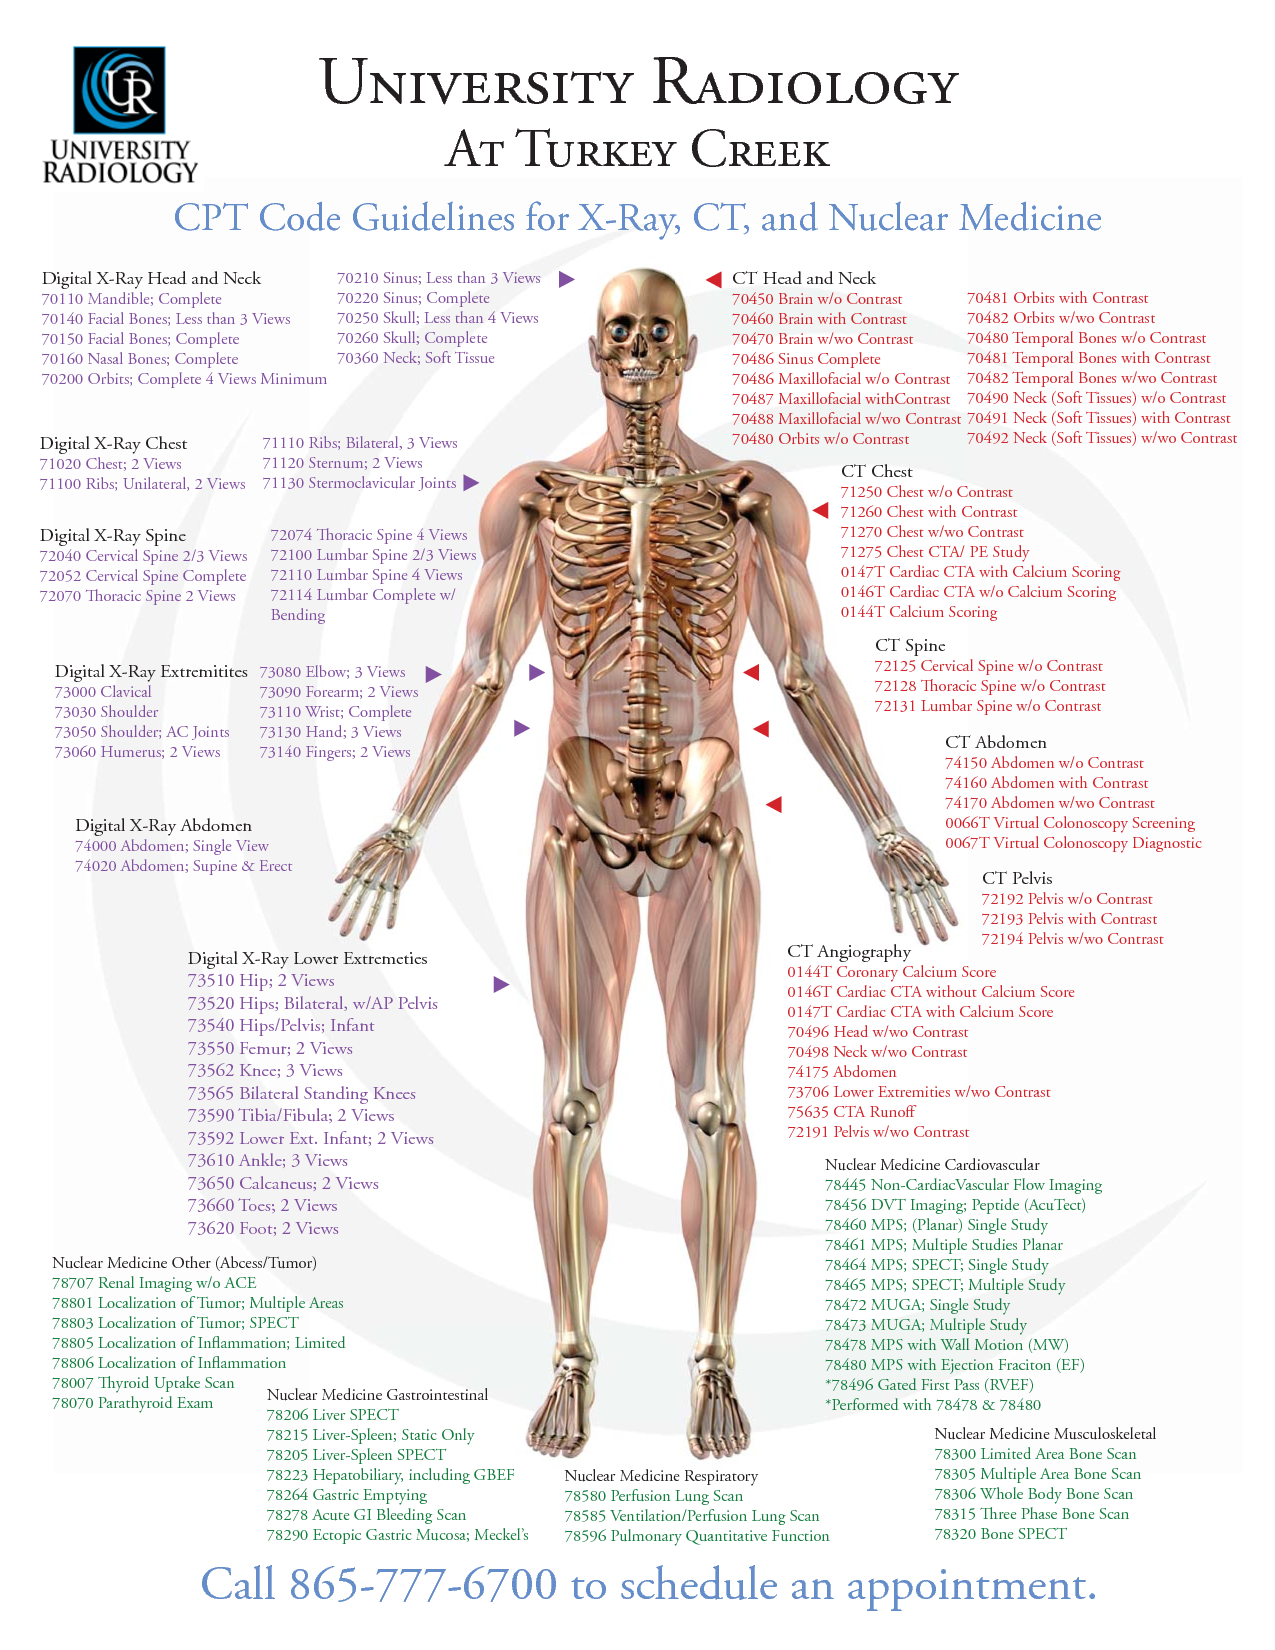 University radiology at turkey creek cpt code guidelines anatomy nursing students fandeluxe Images